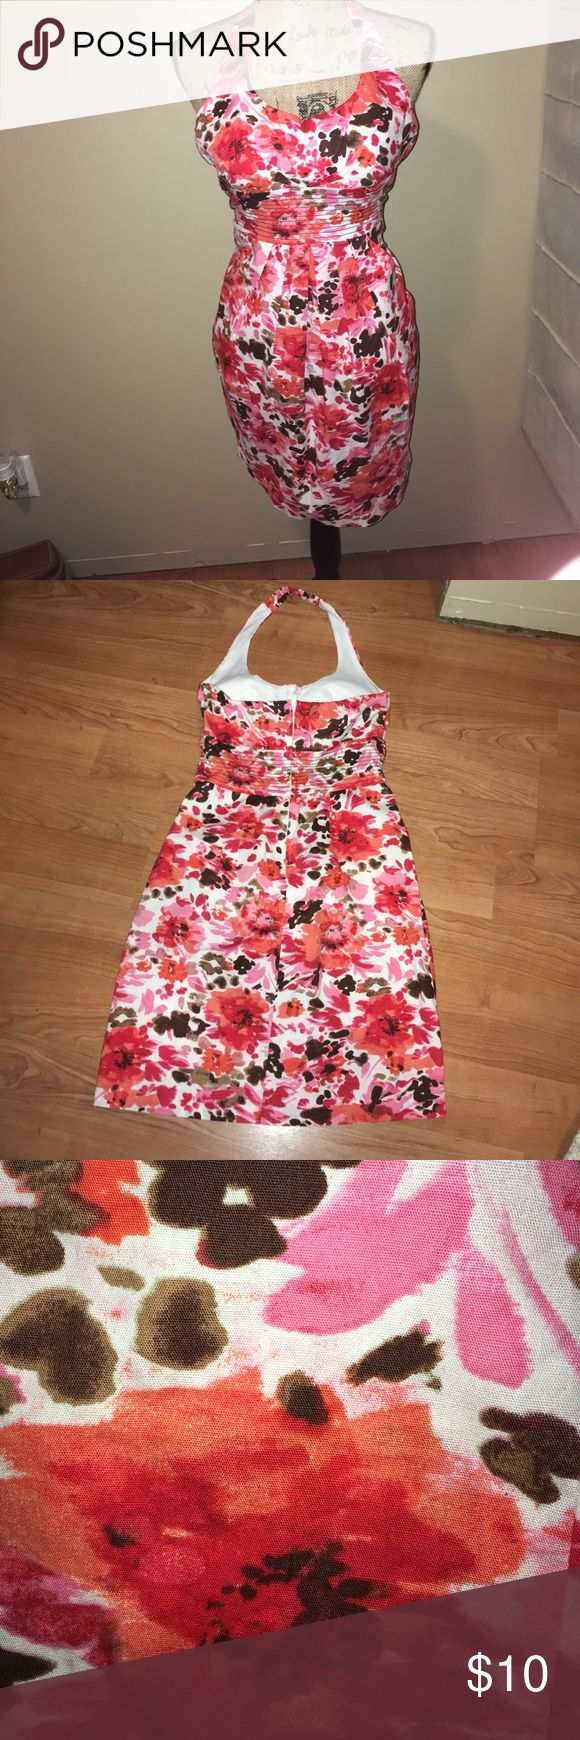 """B. Smart floral print sundress. Used size 5/6 Floral print dress w/strap around neck. Small elastic band at center part of neck. Ruching in chest area. Built in padded bra. Pleated down front under band that goes under chest. Hidden side front pockets on either side of pleats . Fitted and very small wouldn't zip up on mannequin. Oranges, pinks, browns, and white colors.  Waist band under breasts 12"""" across: underarms across 13-1/2"""" center of Neck strap to bottom of dress 35-3/4""""  top of back…"""